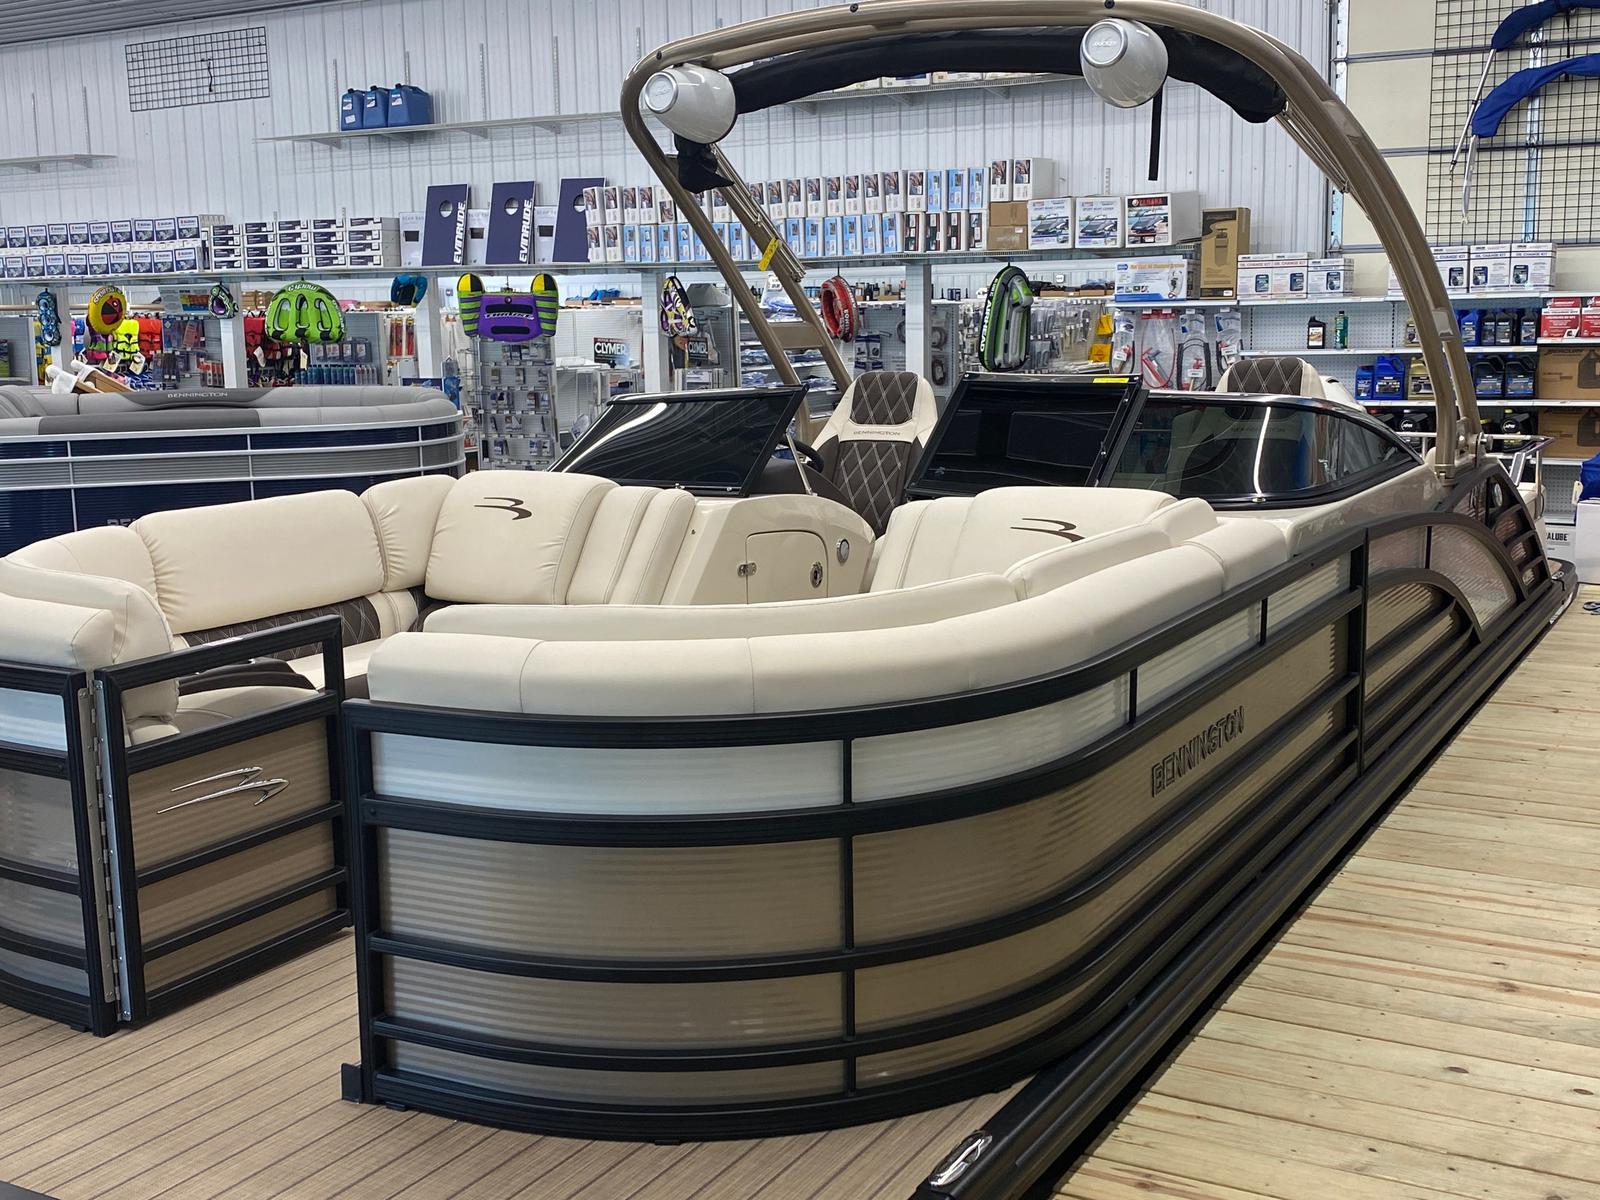 2021 Bennington boat for sale, model of the boat is 23 RSBWA WSHLD DLX Fold Open SP Arch Tri-Toon ESP Package & Image # 21 of 25